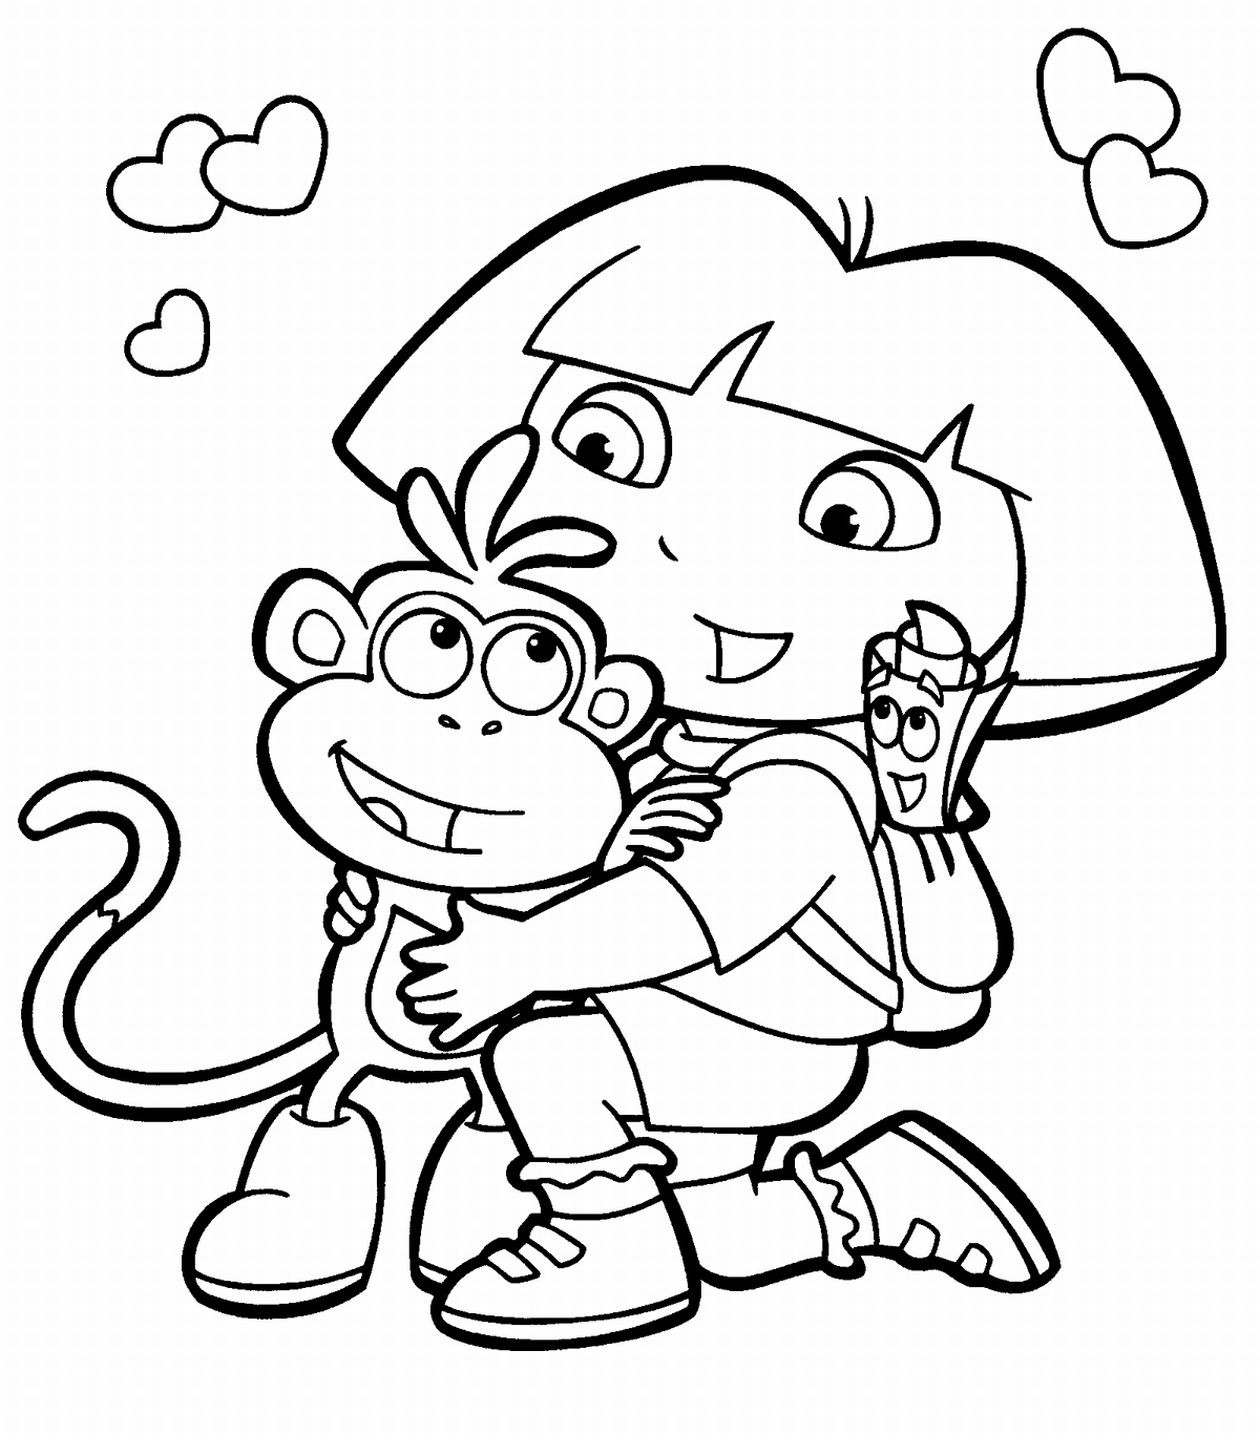 To Print Coloring Pages For Kids Printable 79 On Picture With